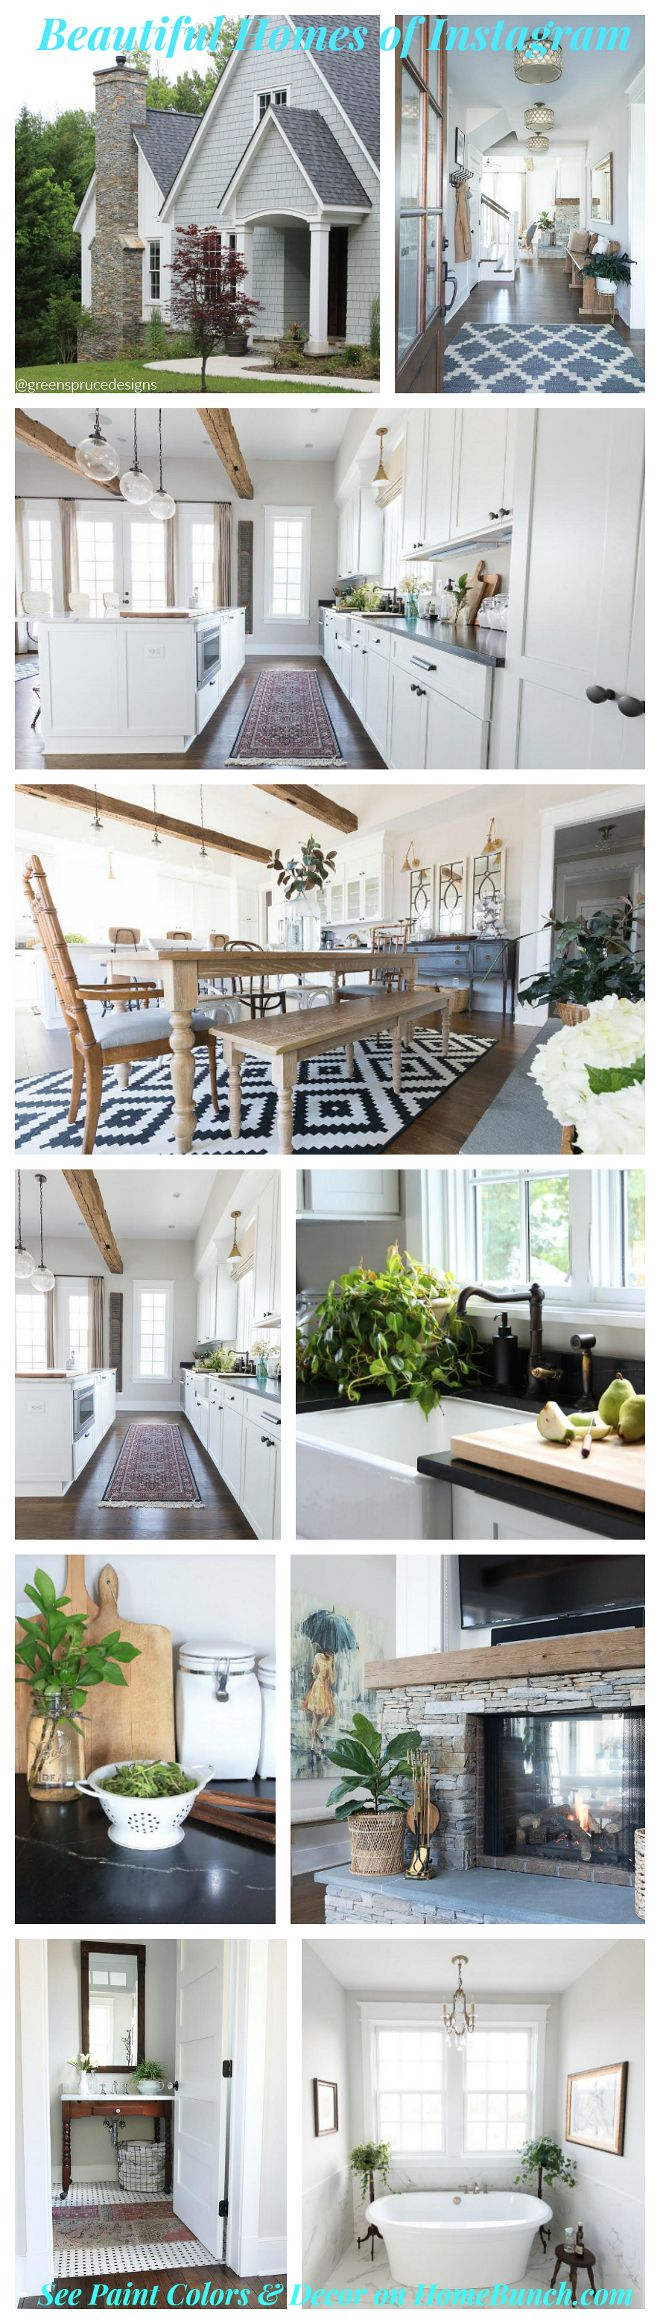 Beautiful Homes of Instagram. A weekly series on Home Bunch featuring beautiful and real homes on Instagram.